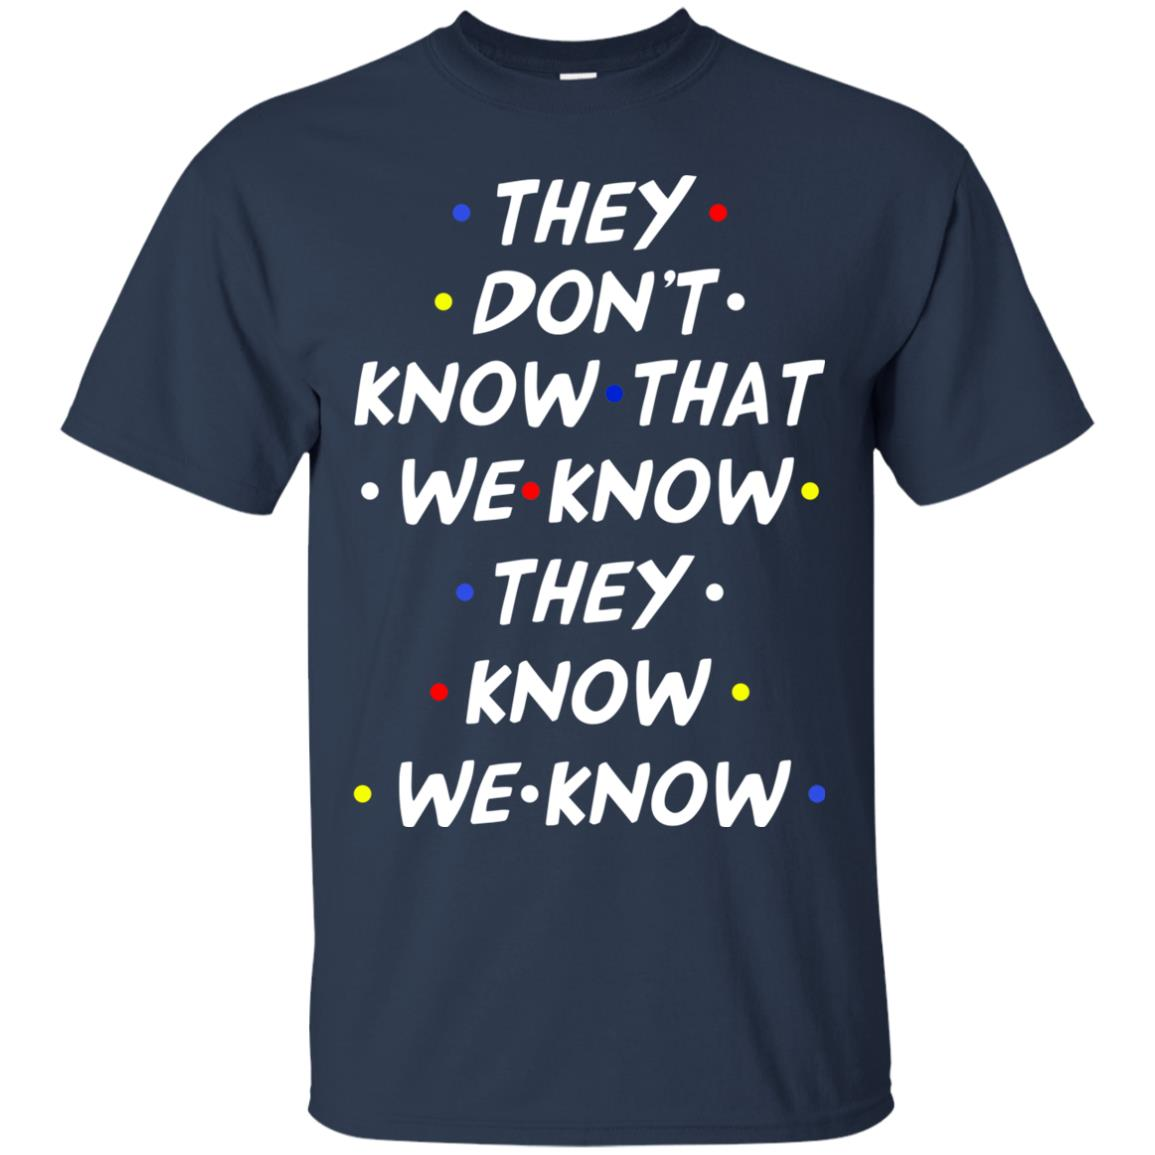 image 526px They dont know that we know they know we know shirt, hoodies, tank